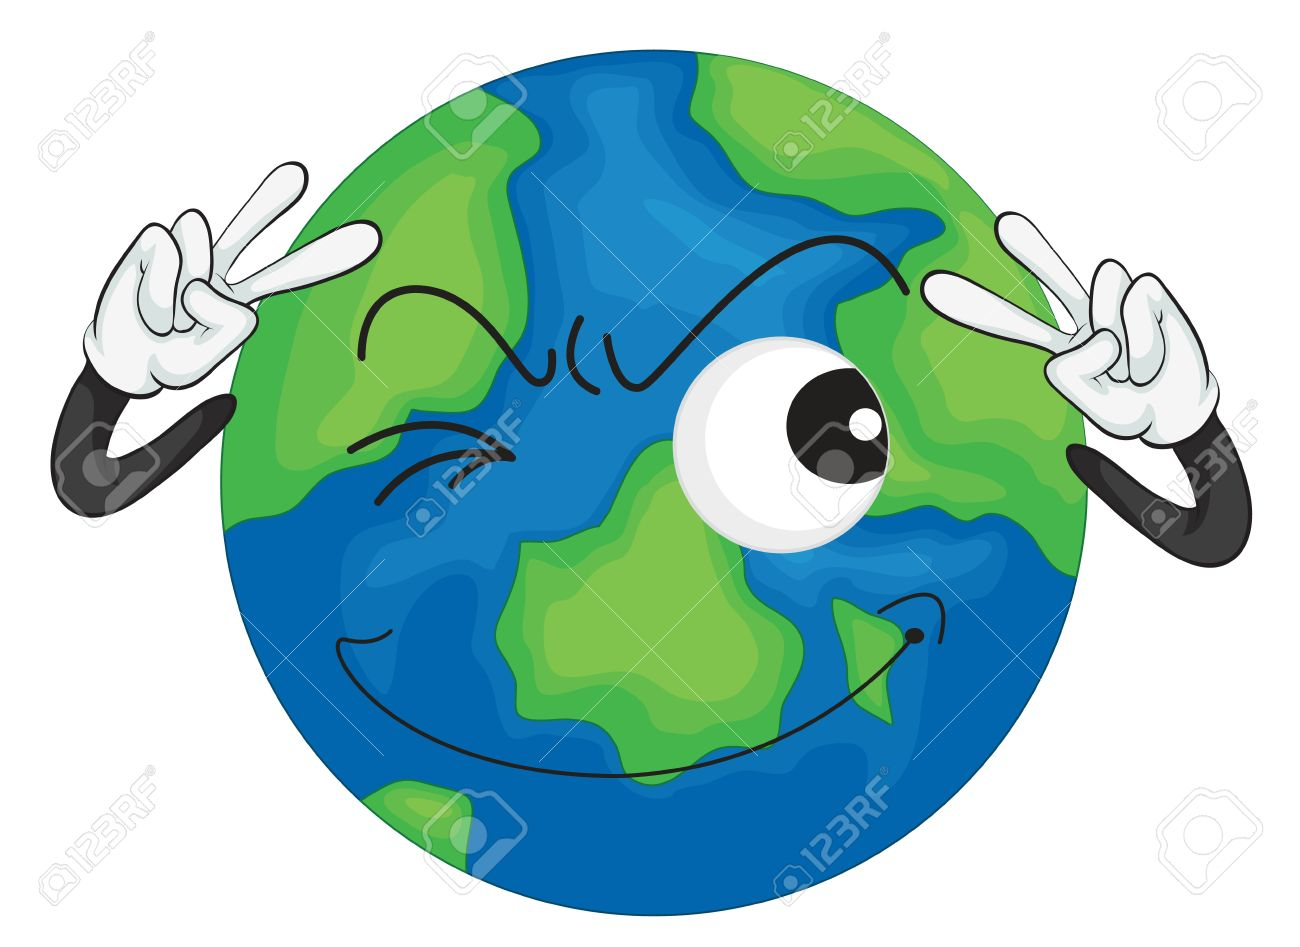 cartoon drawing of earth at getdrawings com free for personal use rh getdrawings com cartoon of birthday cake cartoon of the day